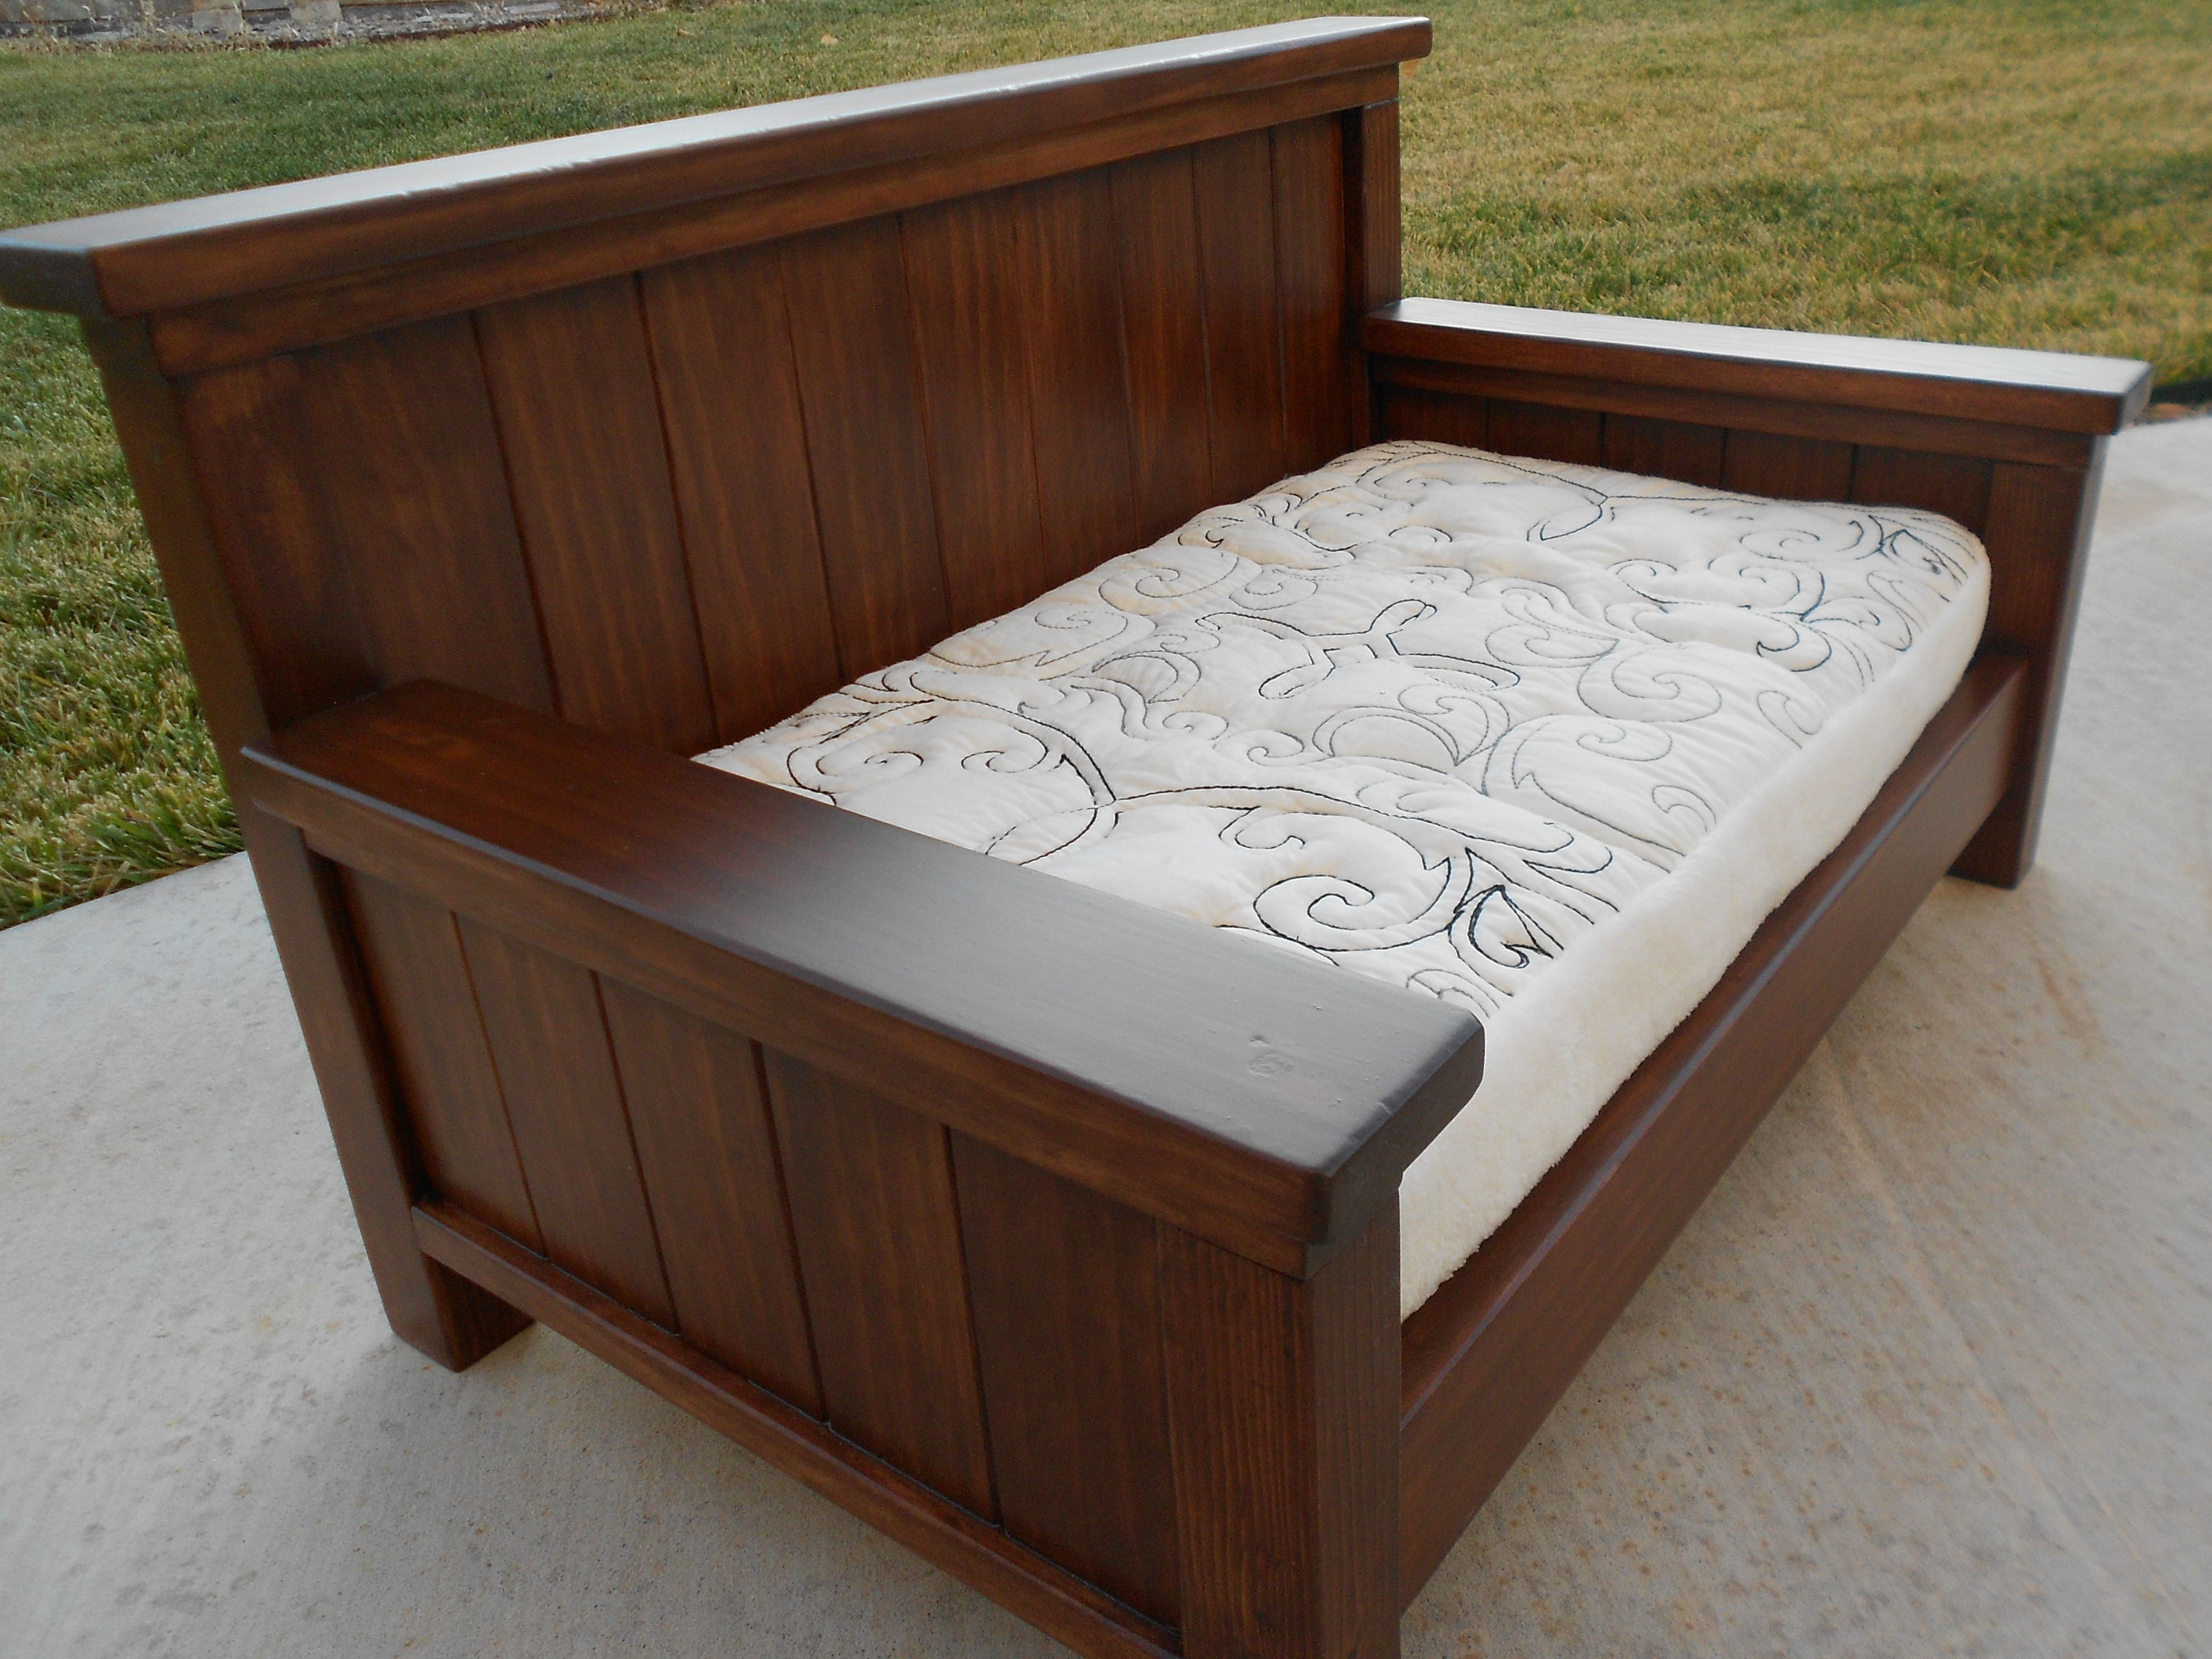 Best ideas about DIY Daybed Frame . Save or Pin Queen Size Daybed From Plan new Now.